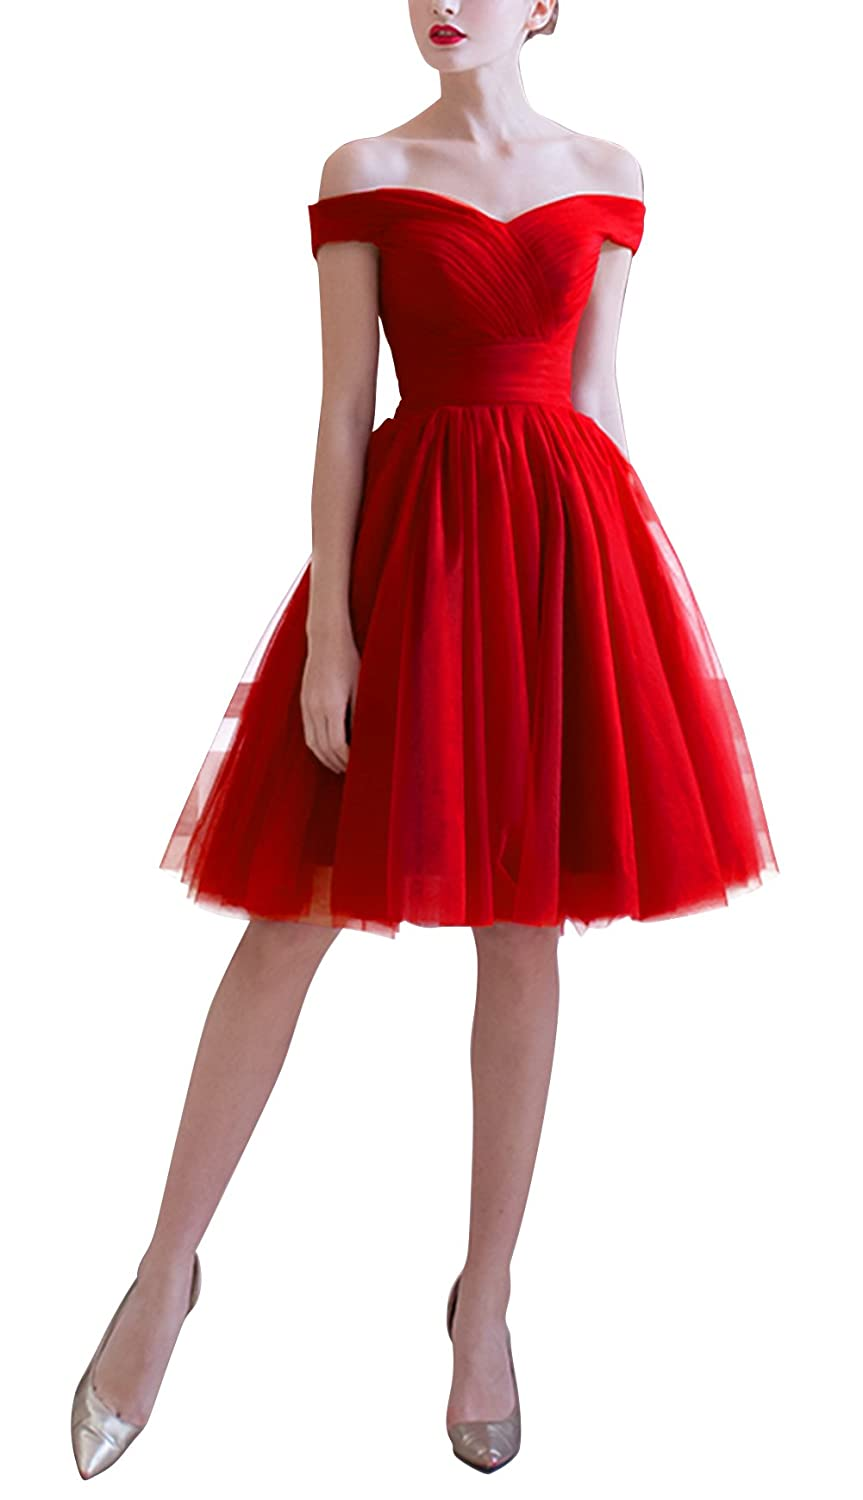 a89e76ed9c Amazon.com  Ethel Women s Tulle A-line Boat Neck Pleated Knee Length Prom  Dress  Clothing